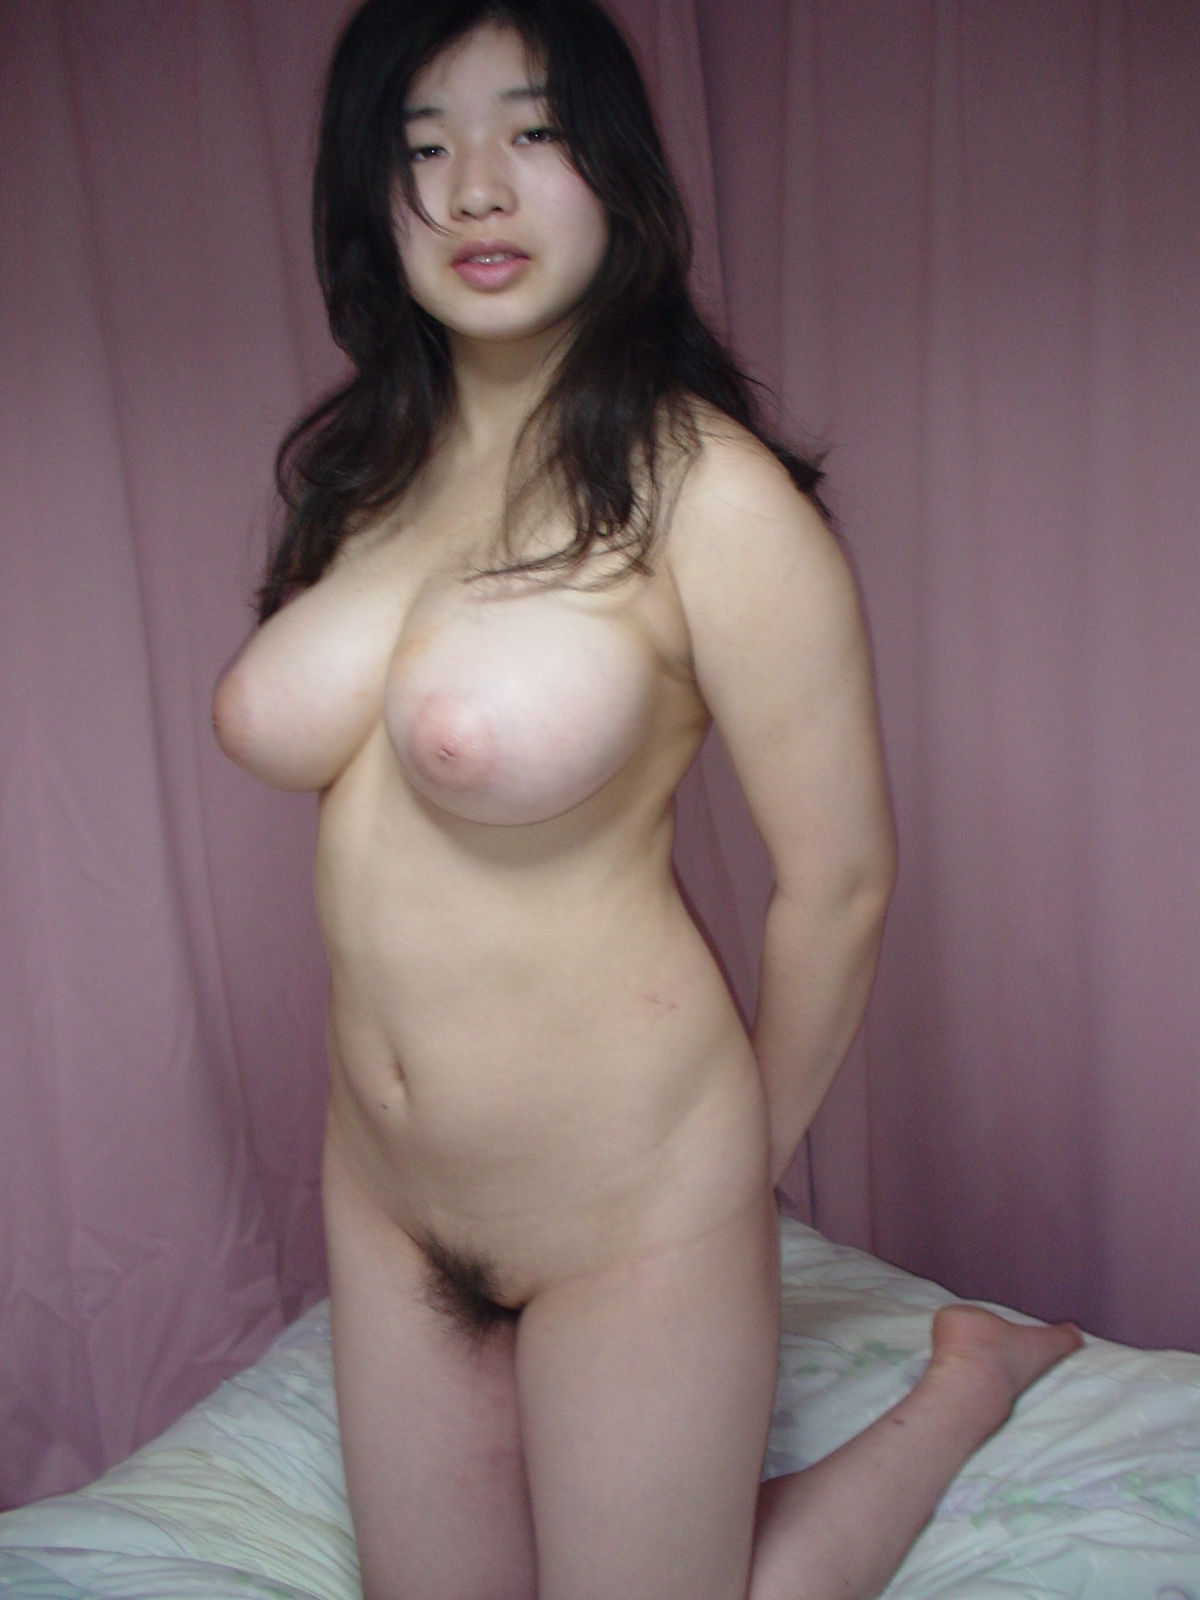 With chubby asian girls nude star...looks lot